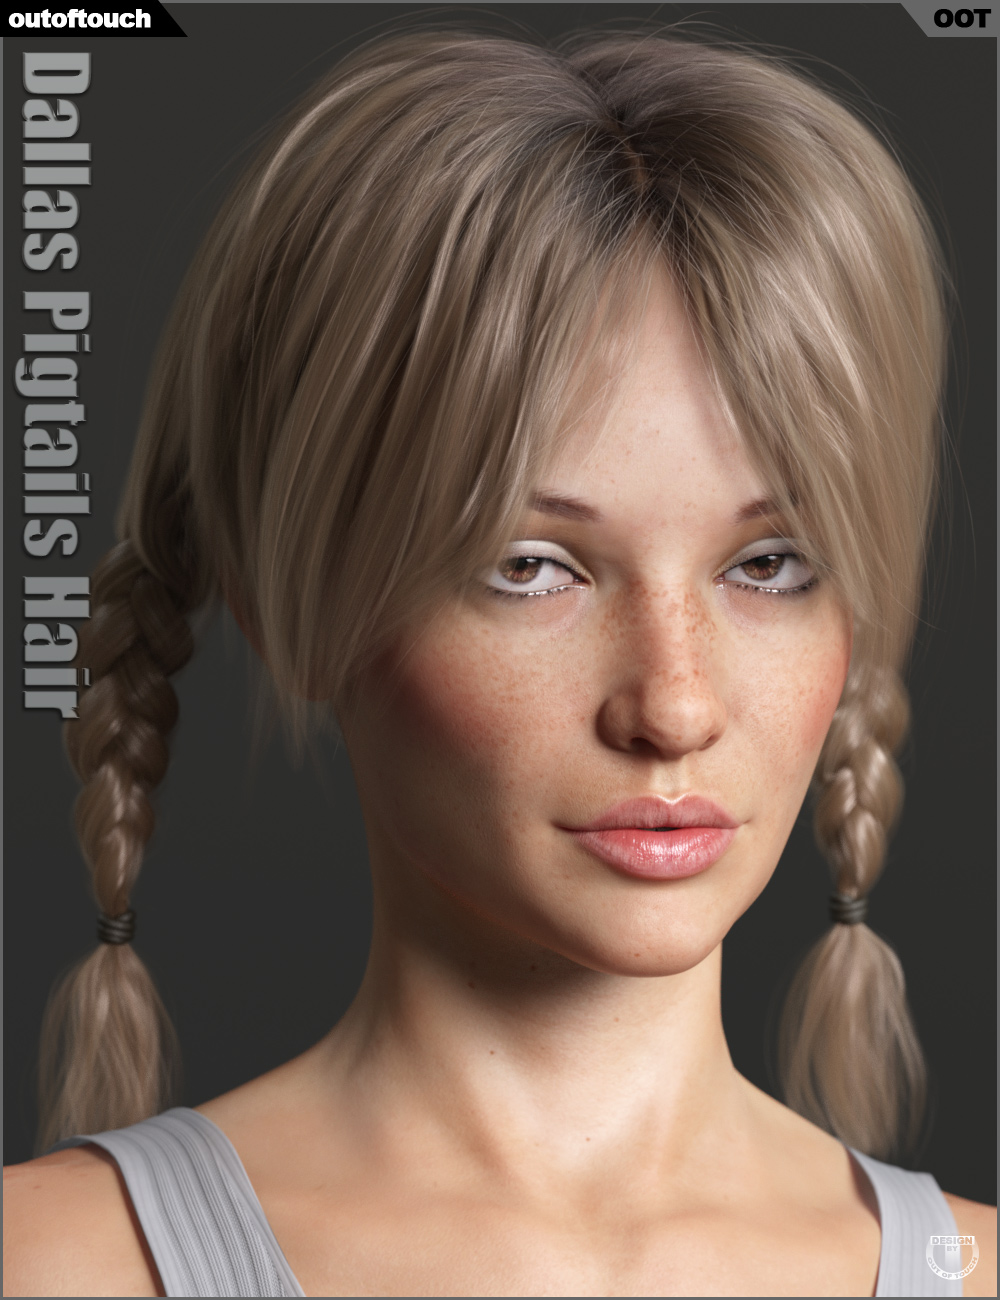 Dallas Pigtails Hair for Genesis 3 and 8 Female(s) by: outoftouch, 3D Models by Daz 3D